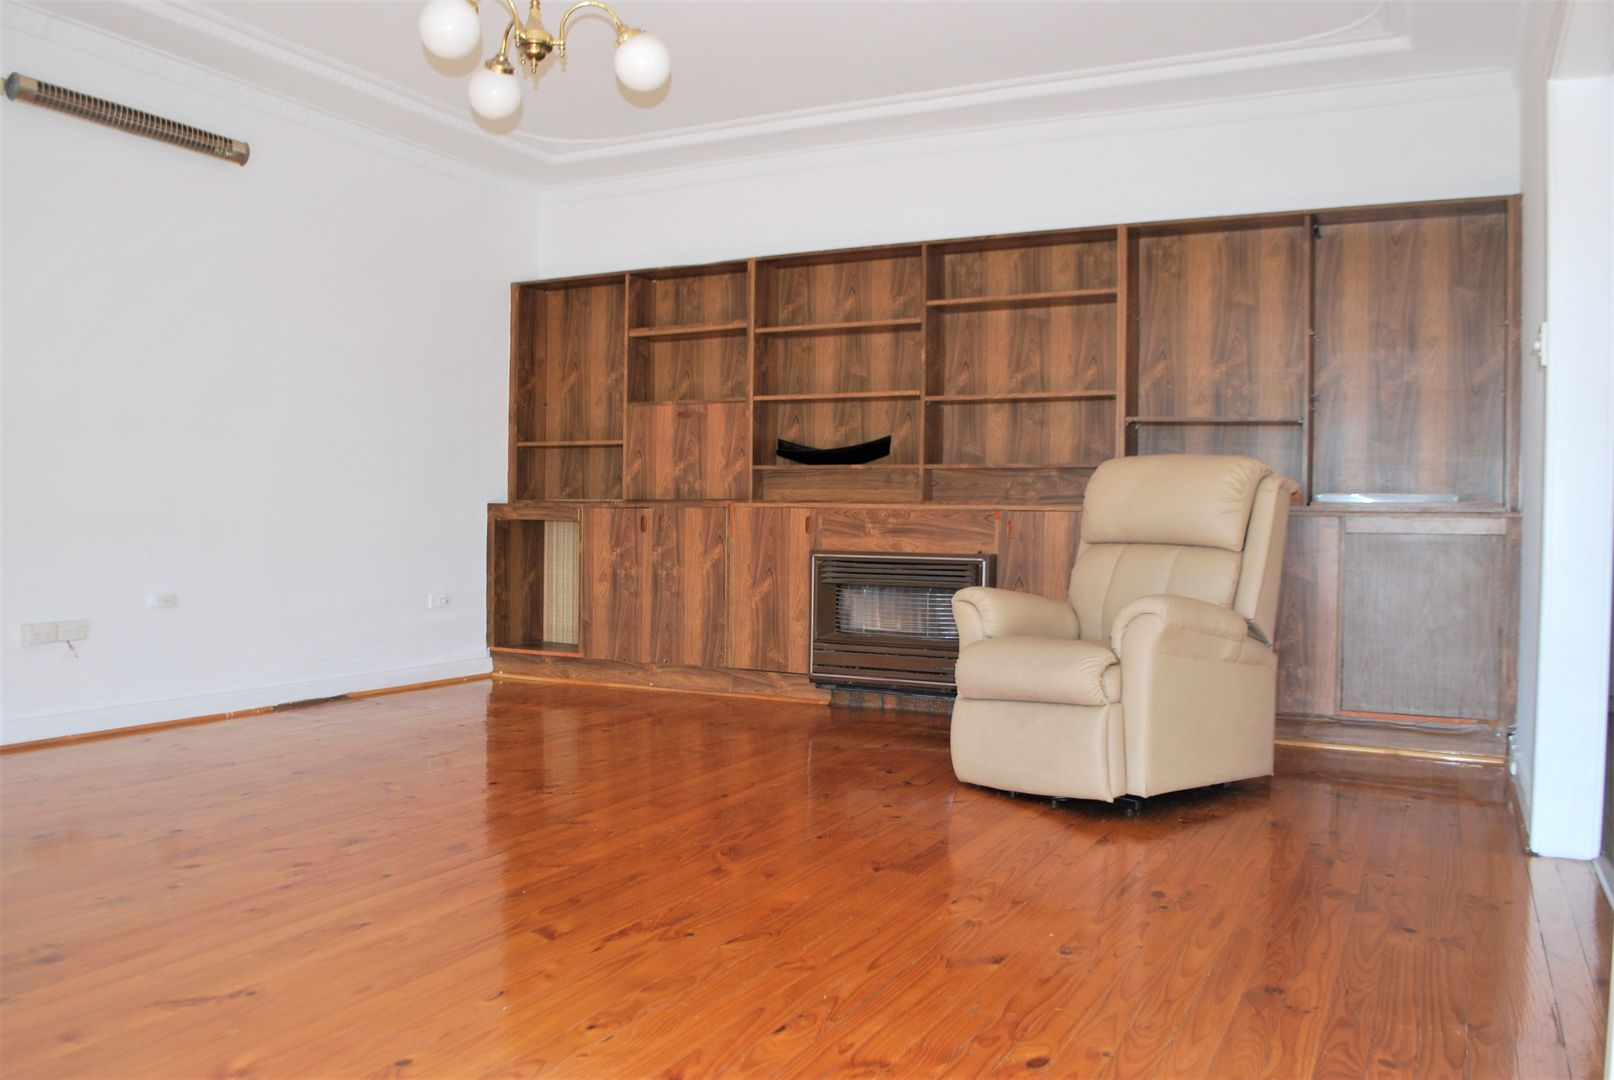 550 Lower North East Road, Campbelltown SA 5074, Image 2